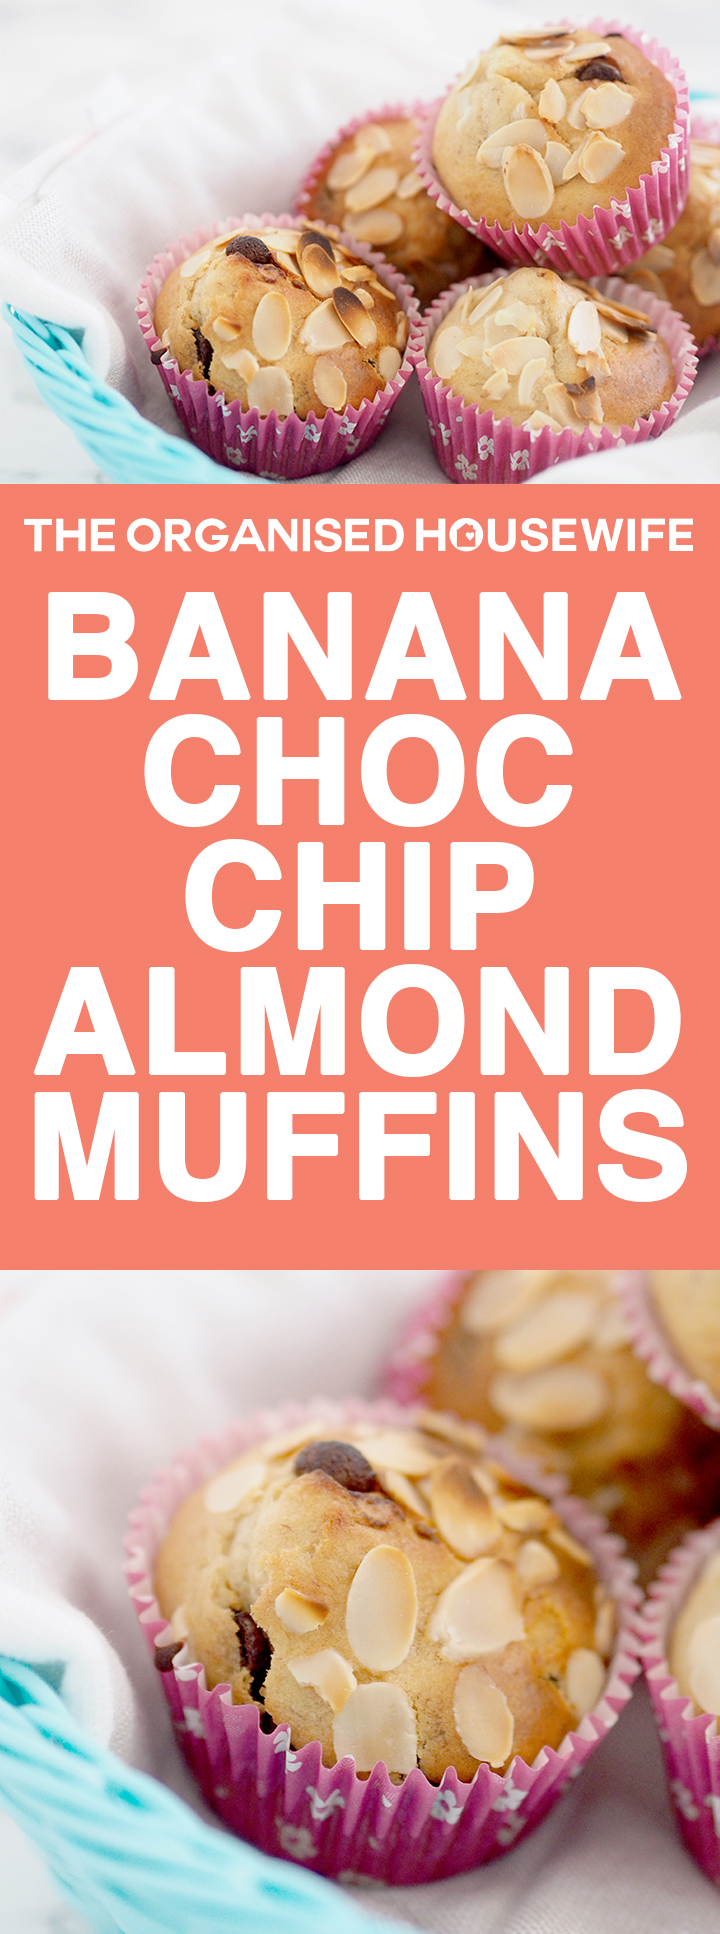 This Banana Choc Chip Almond Muffin recipe is really quick to prepare, a great recipe for the kids lunch boxes (omit nuts if your school doesn't allow).